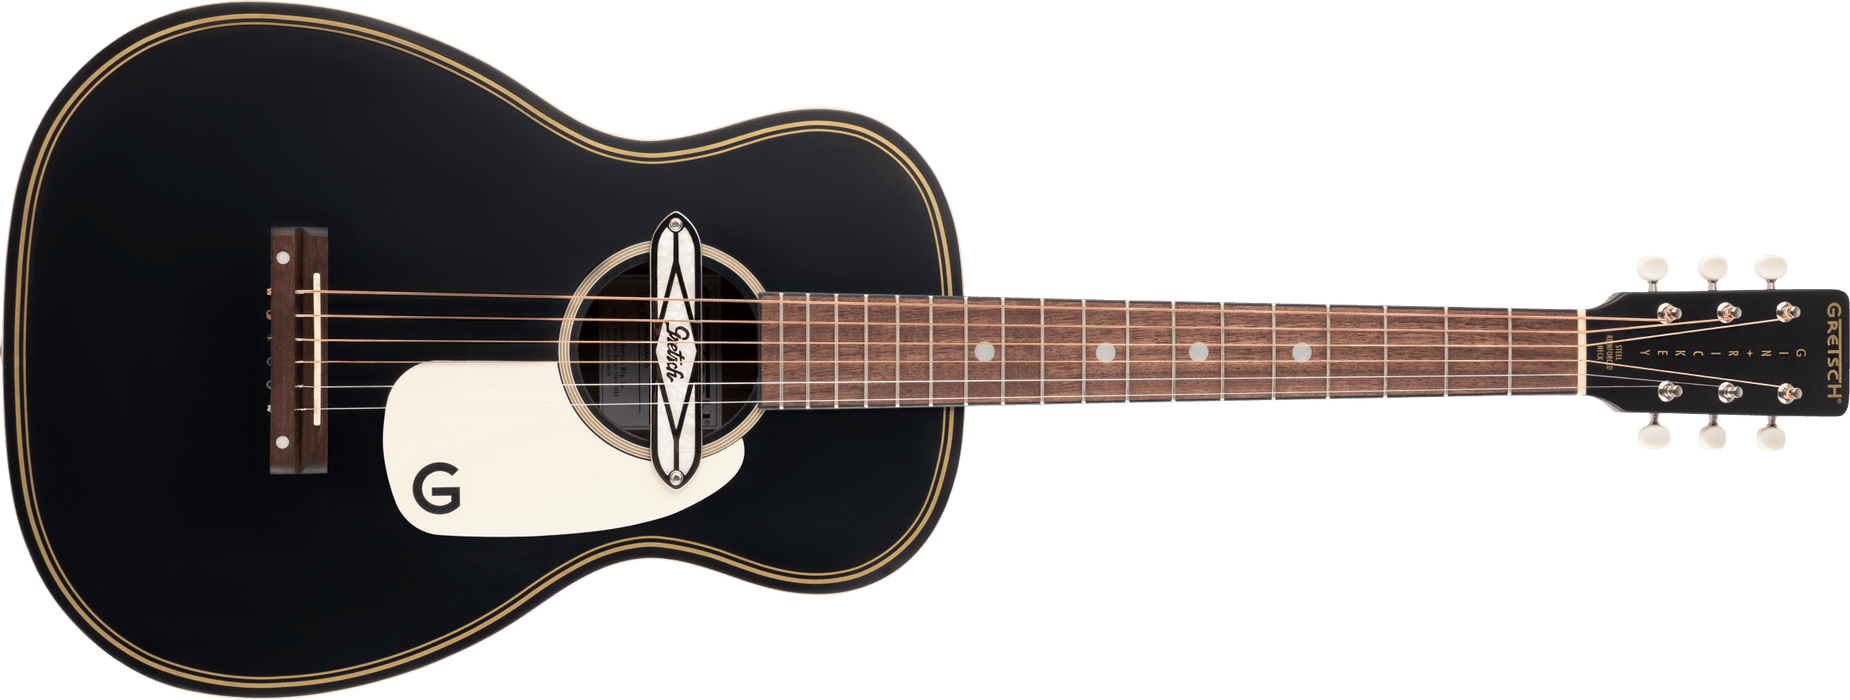 Gretsch G9520E Gin Rickey Electro Acoustic with Soundhole Pickup, Walnut Fingerboard, Smokestack Black